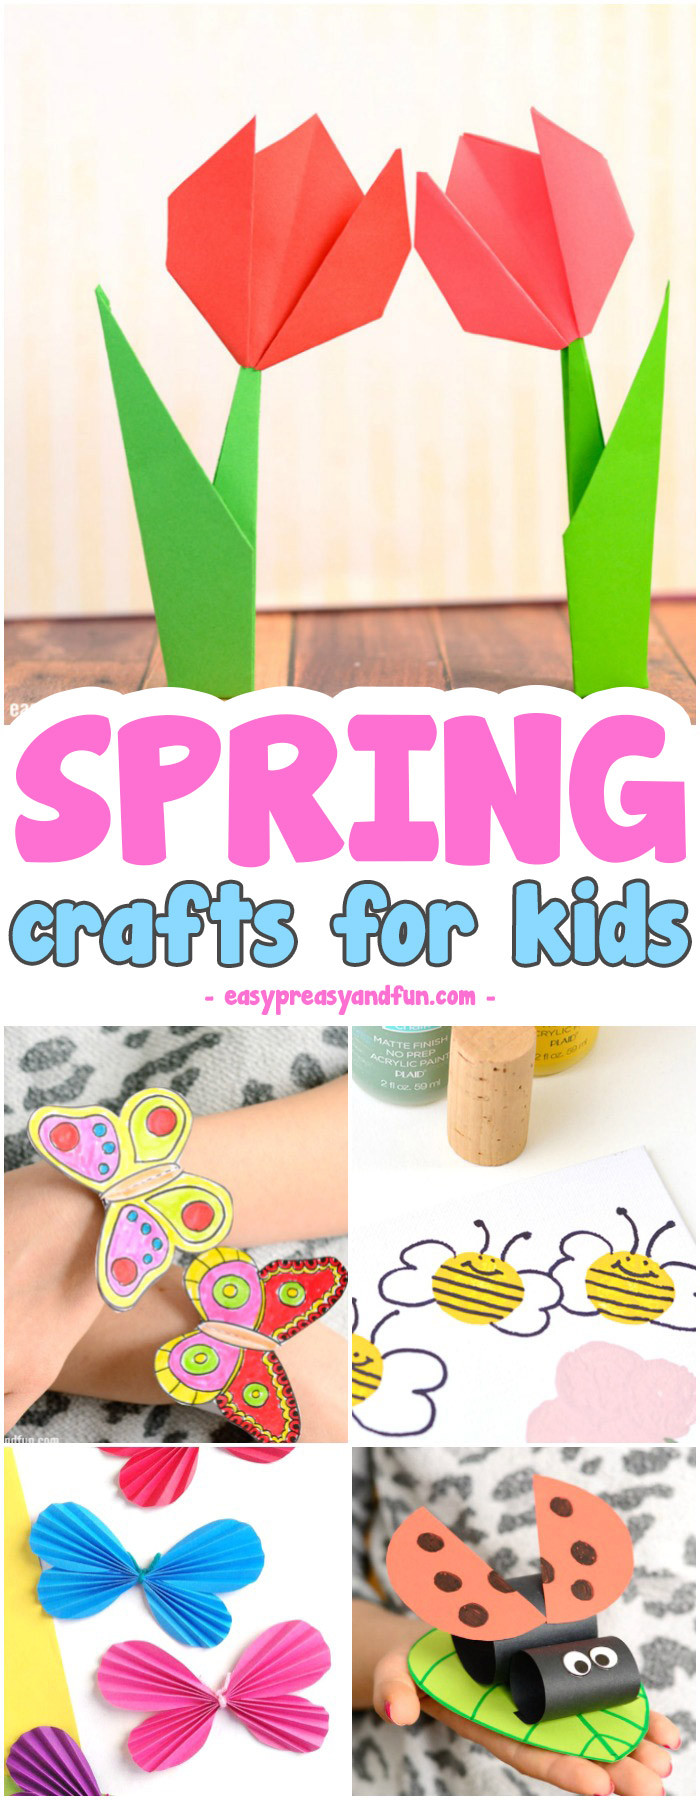 Best ideas about Art Crafts For Kids . Save or Pin Spring Crafts for Kids Art and Craft Project Ideas for Now.